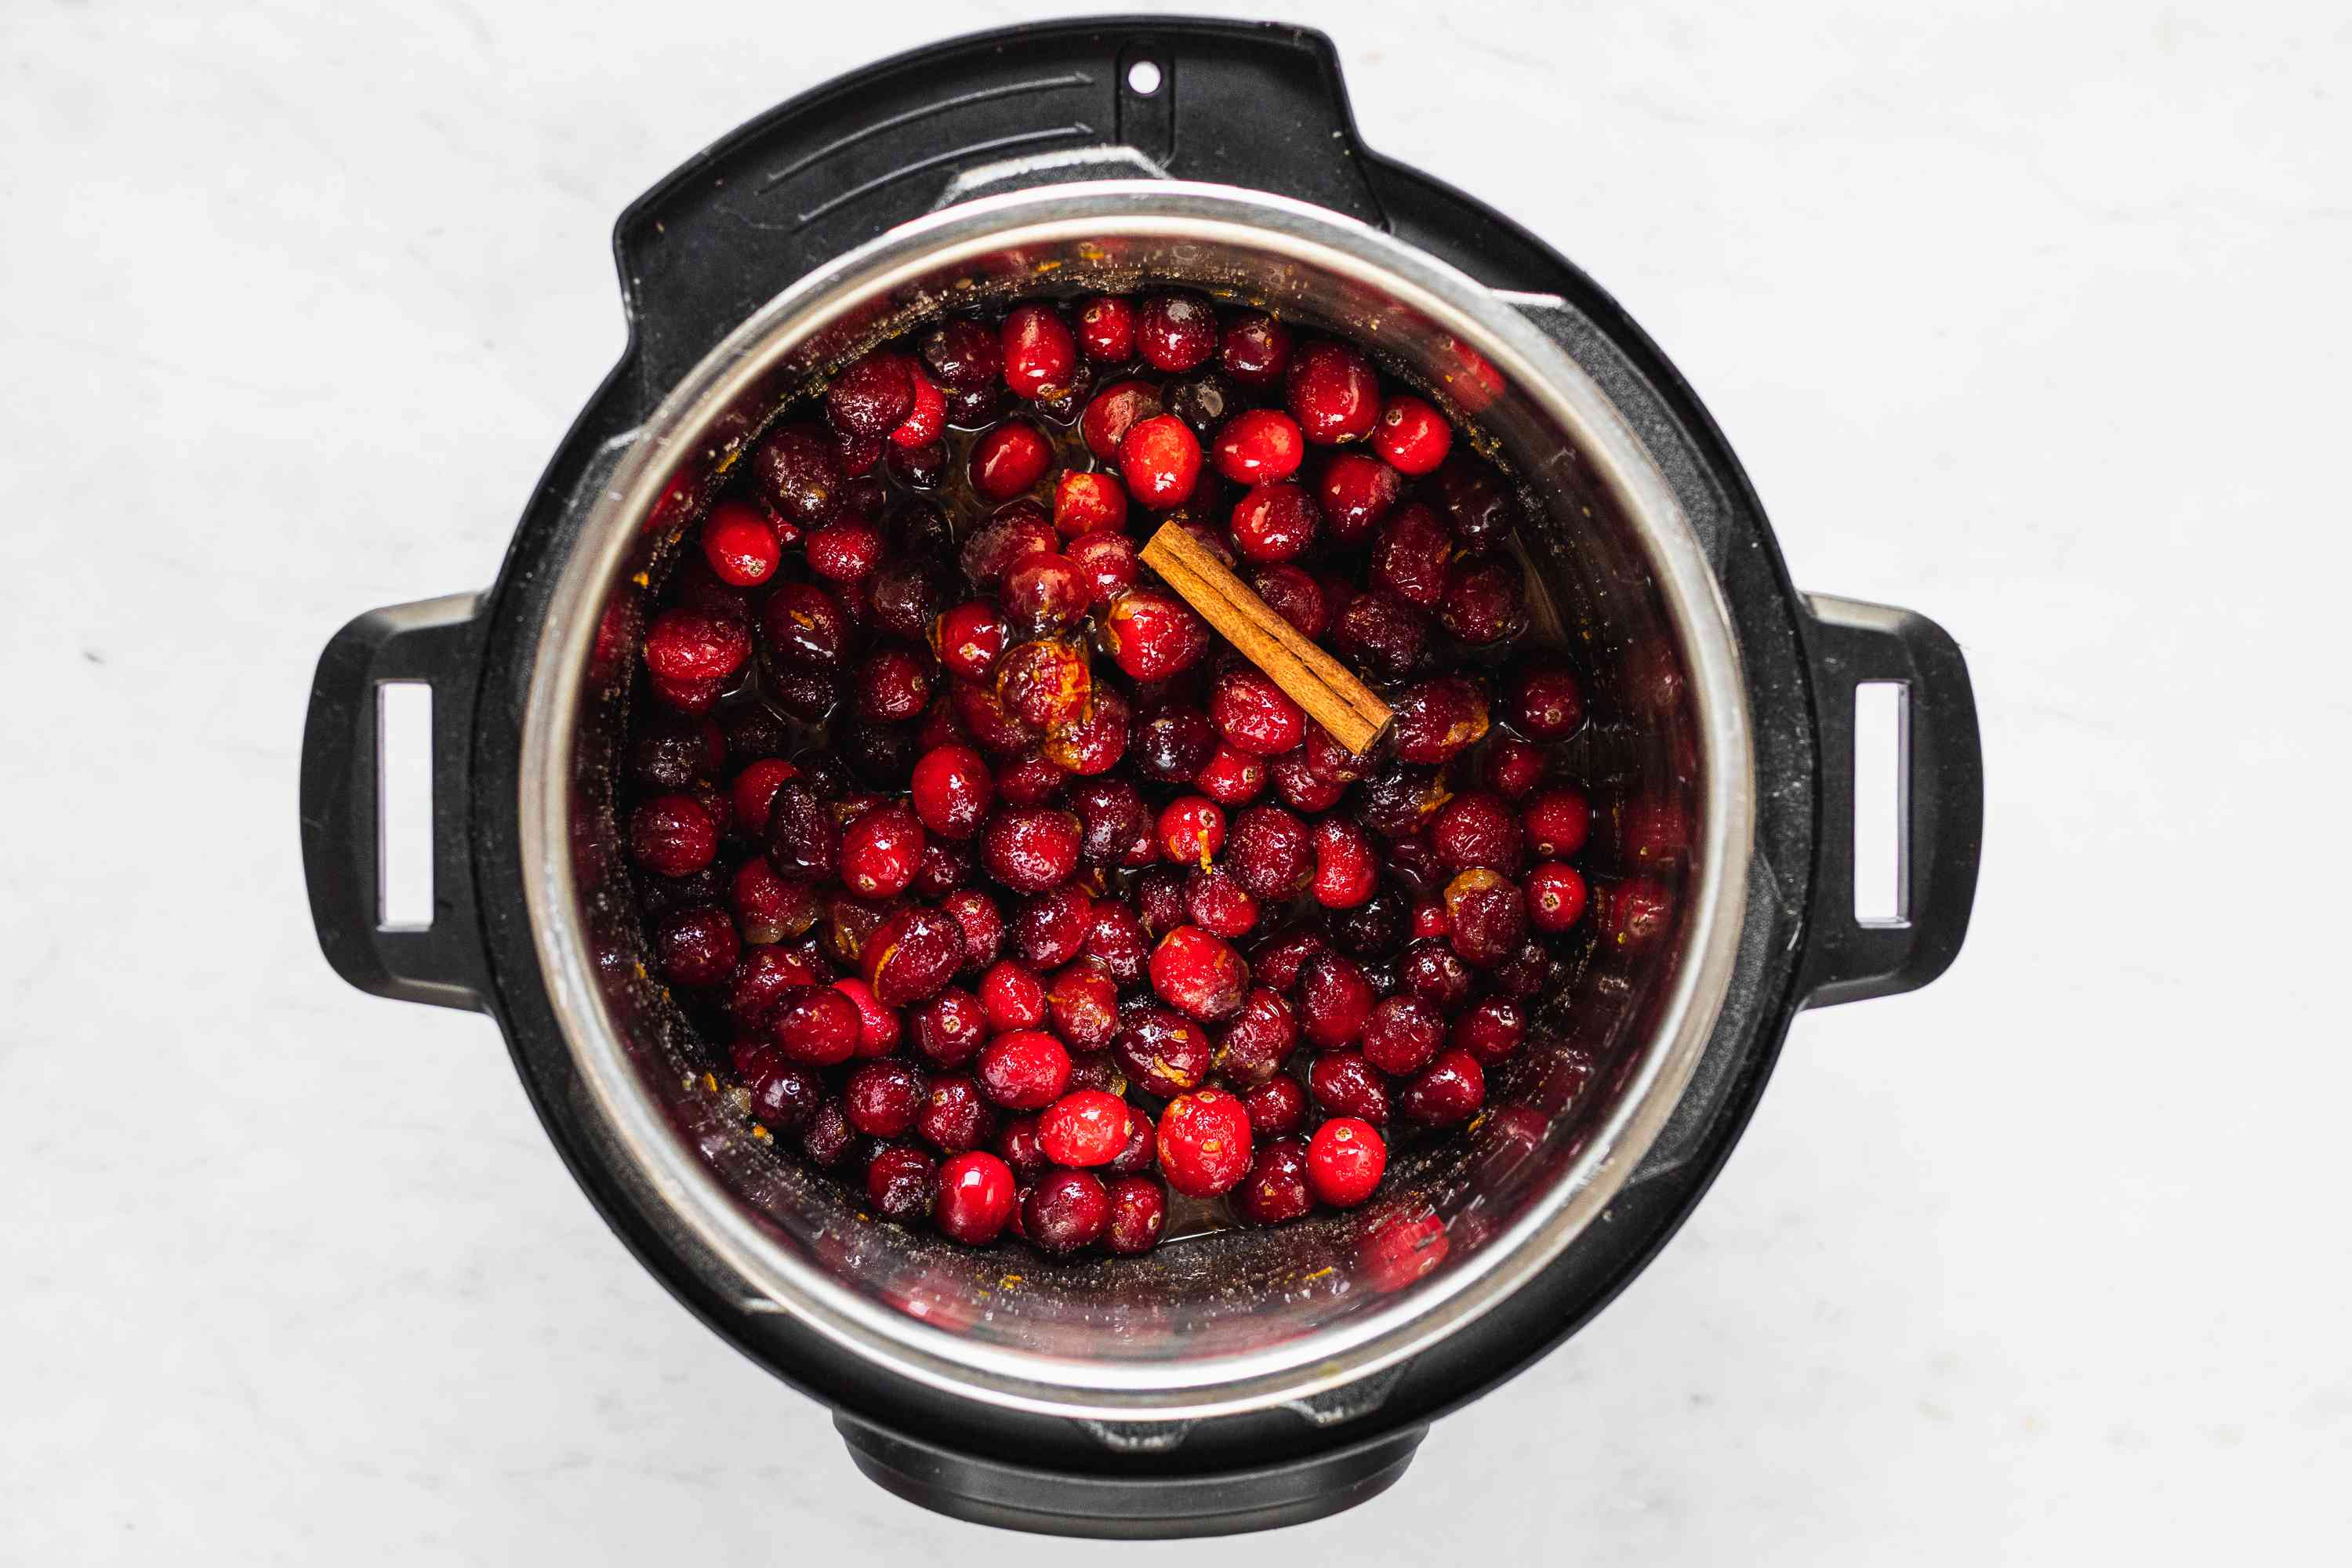 sugar, orange juice, maple syrup, finely grated orange zest, vanilla extract, and the cinnamon in an instant pot with cranberries